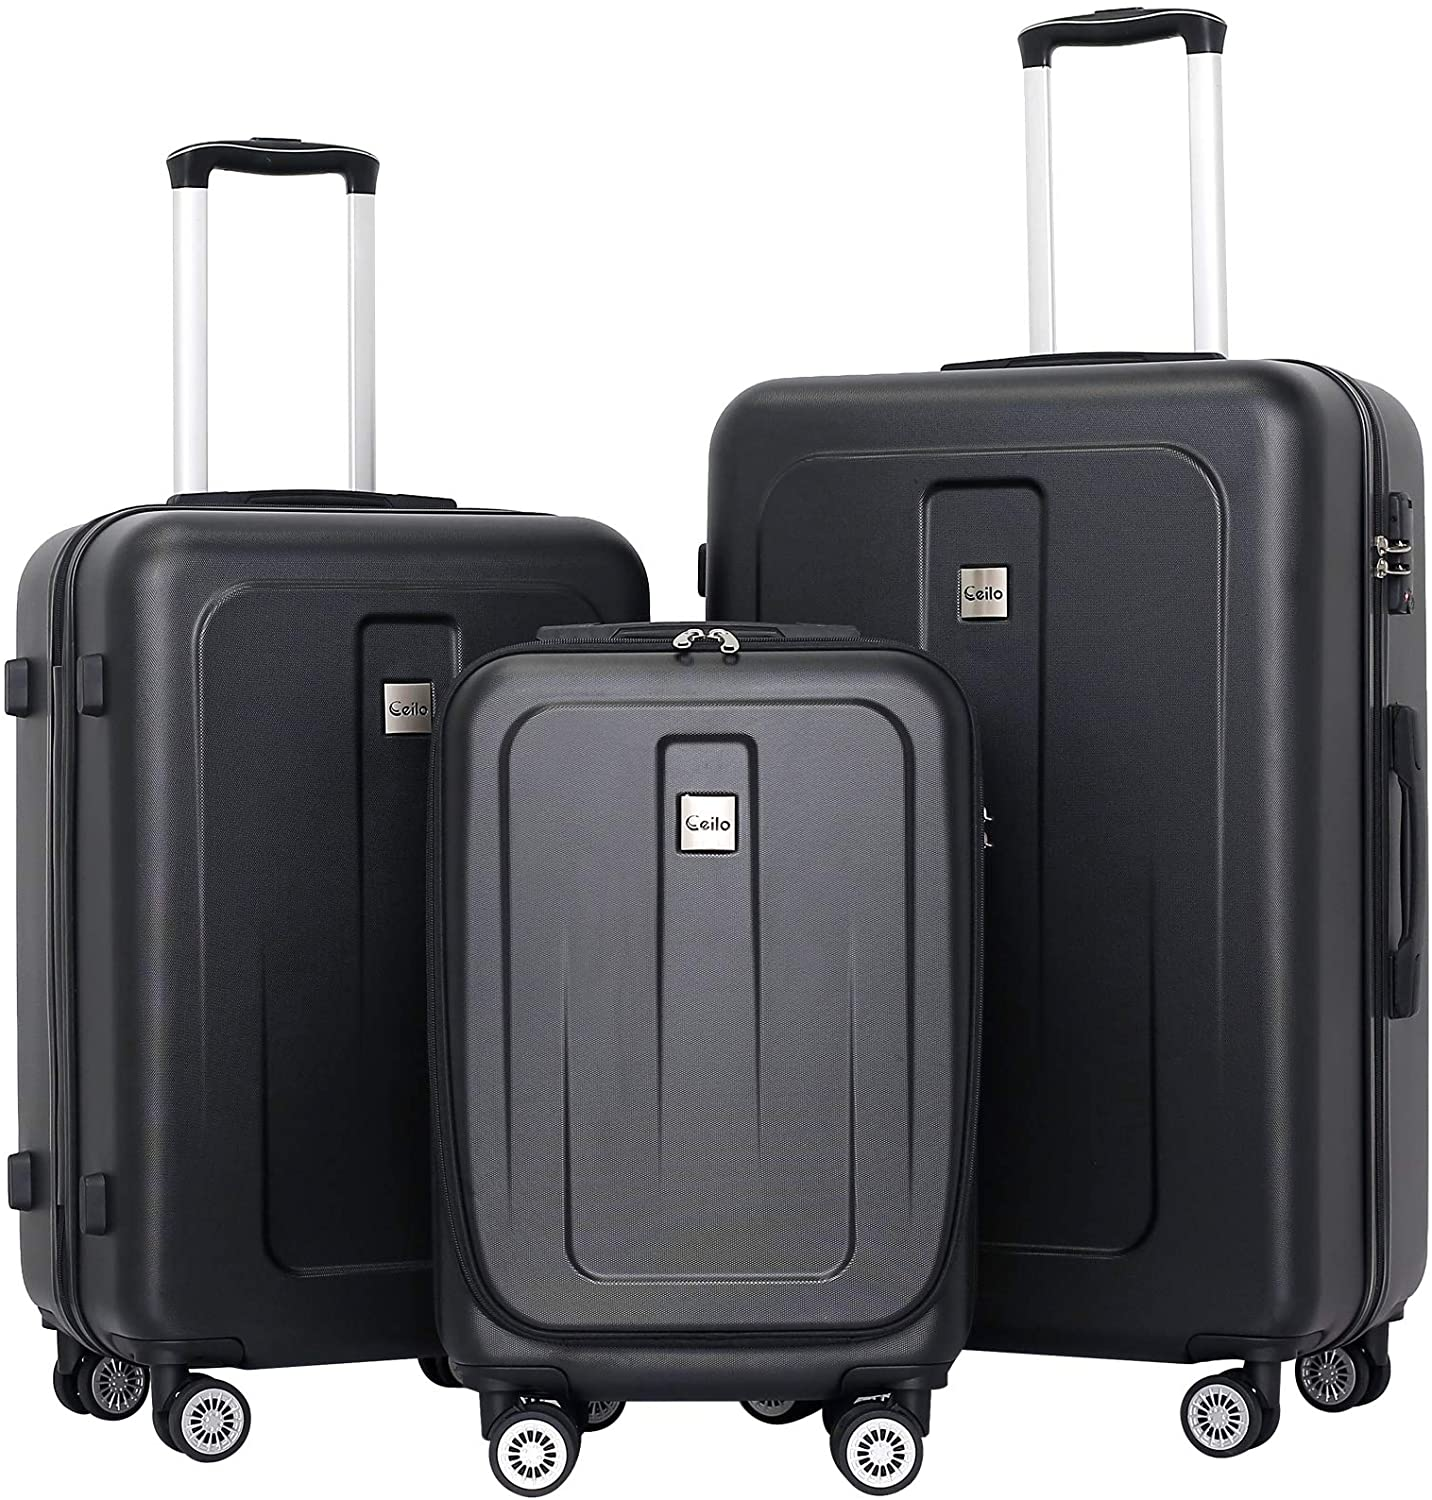 Ceilo 3 Pieces ABS Luggage Sets with TSA Lock